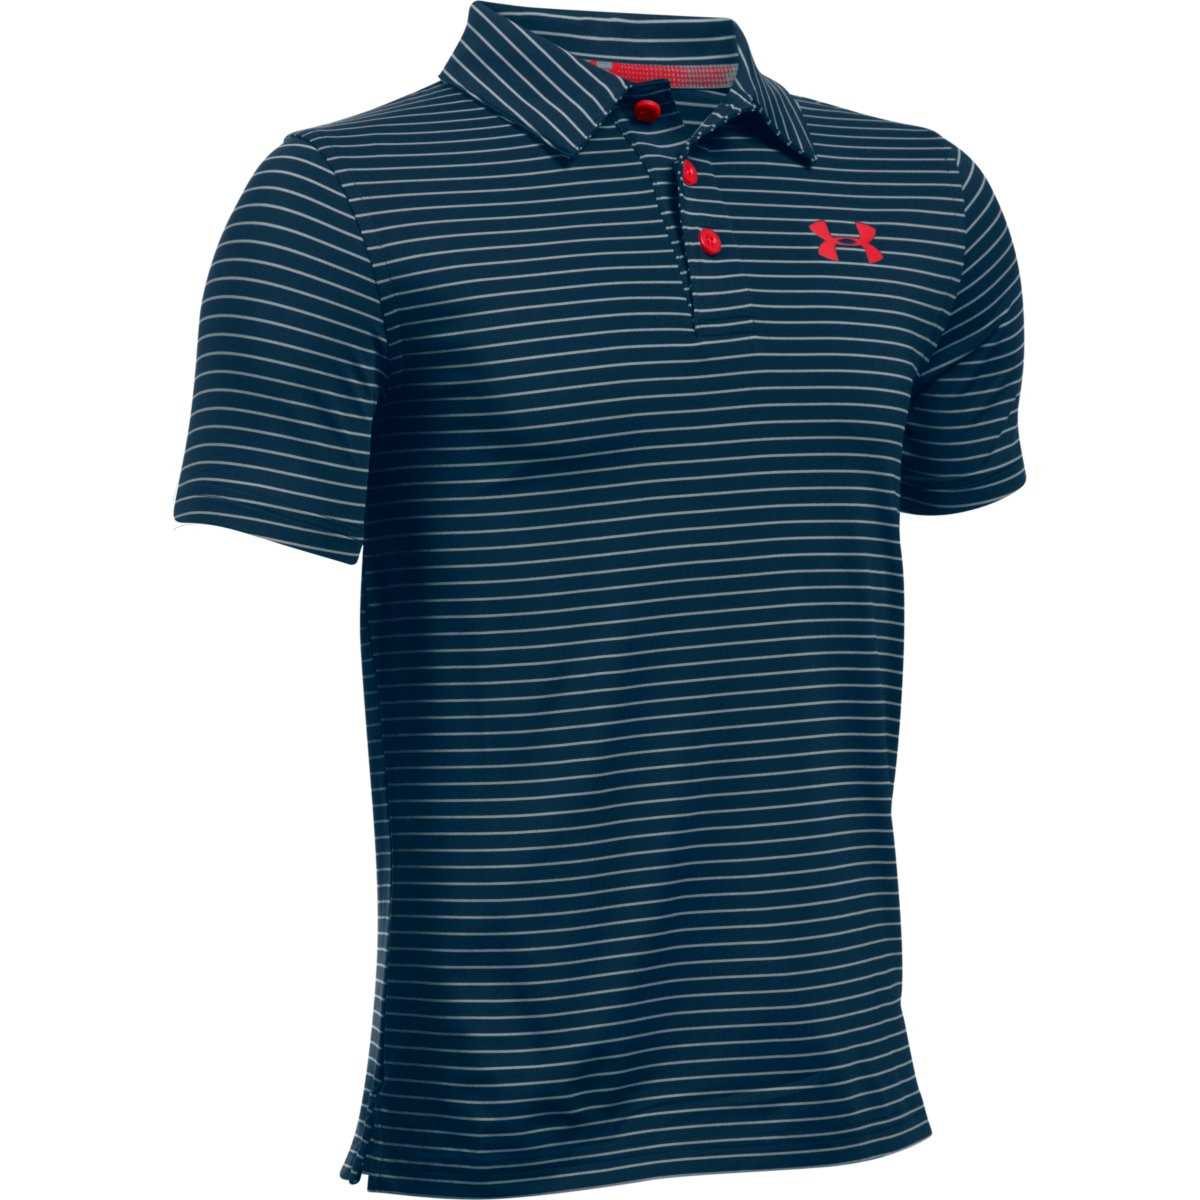 eaec3aa1 Under Armour Golf Boys' Playoff Stripe Polo - Academy/Steel/Red